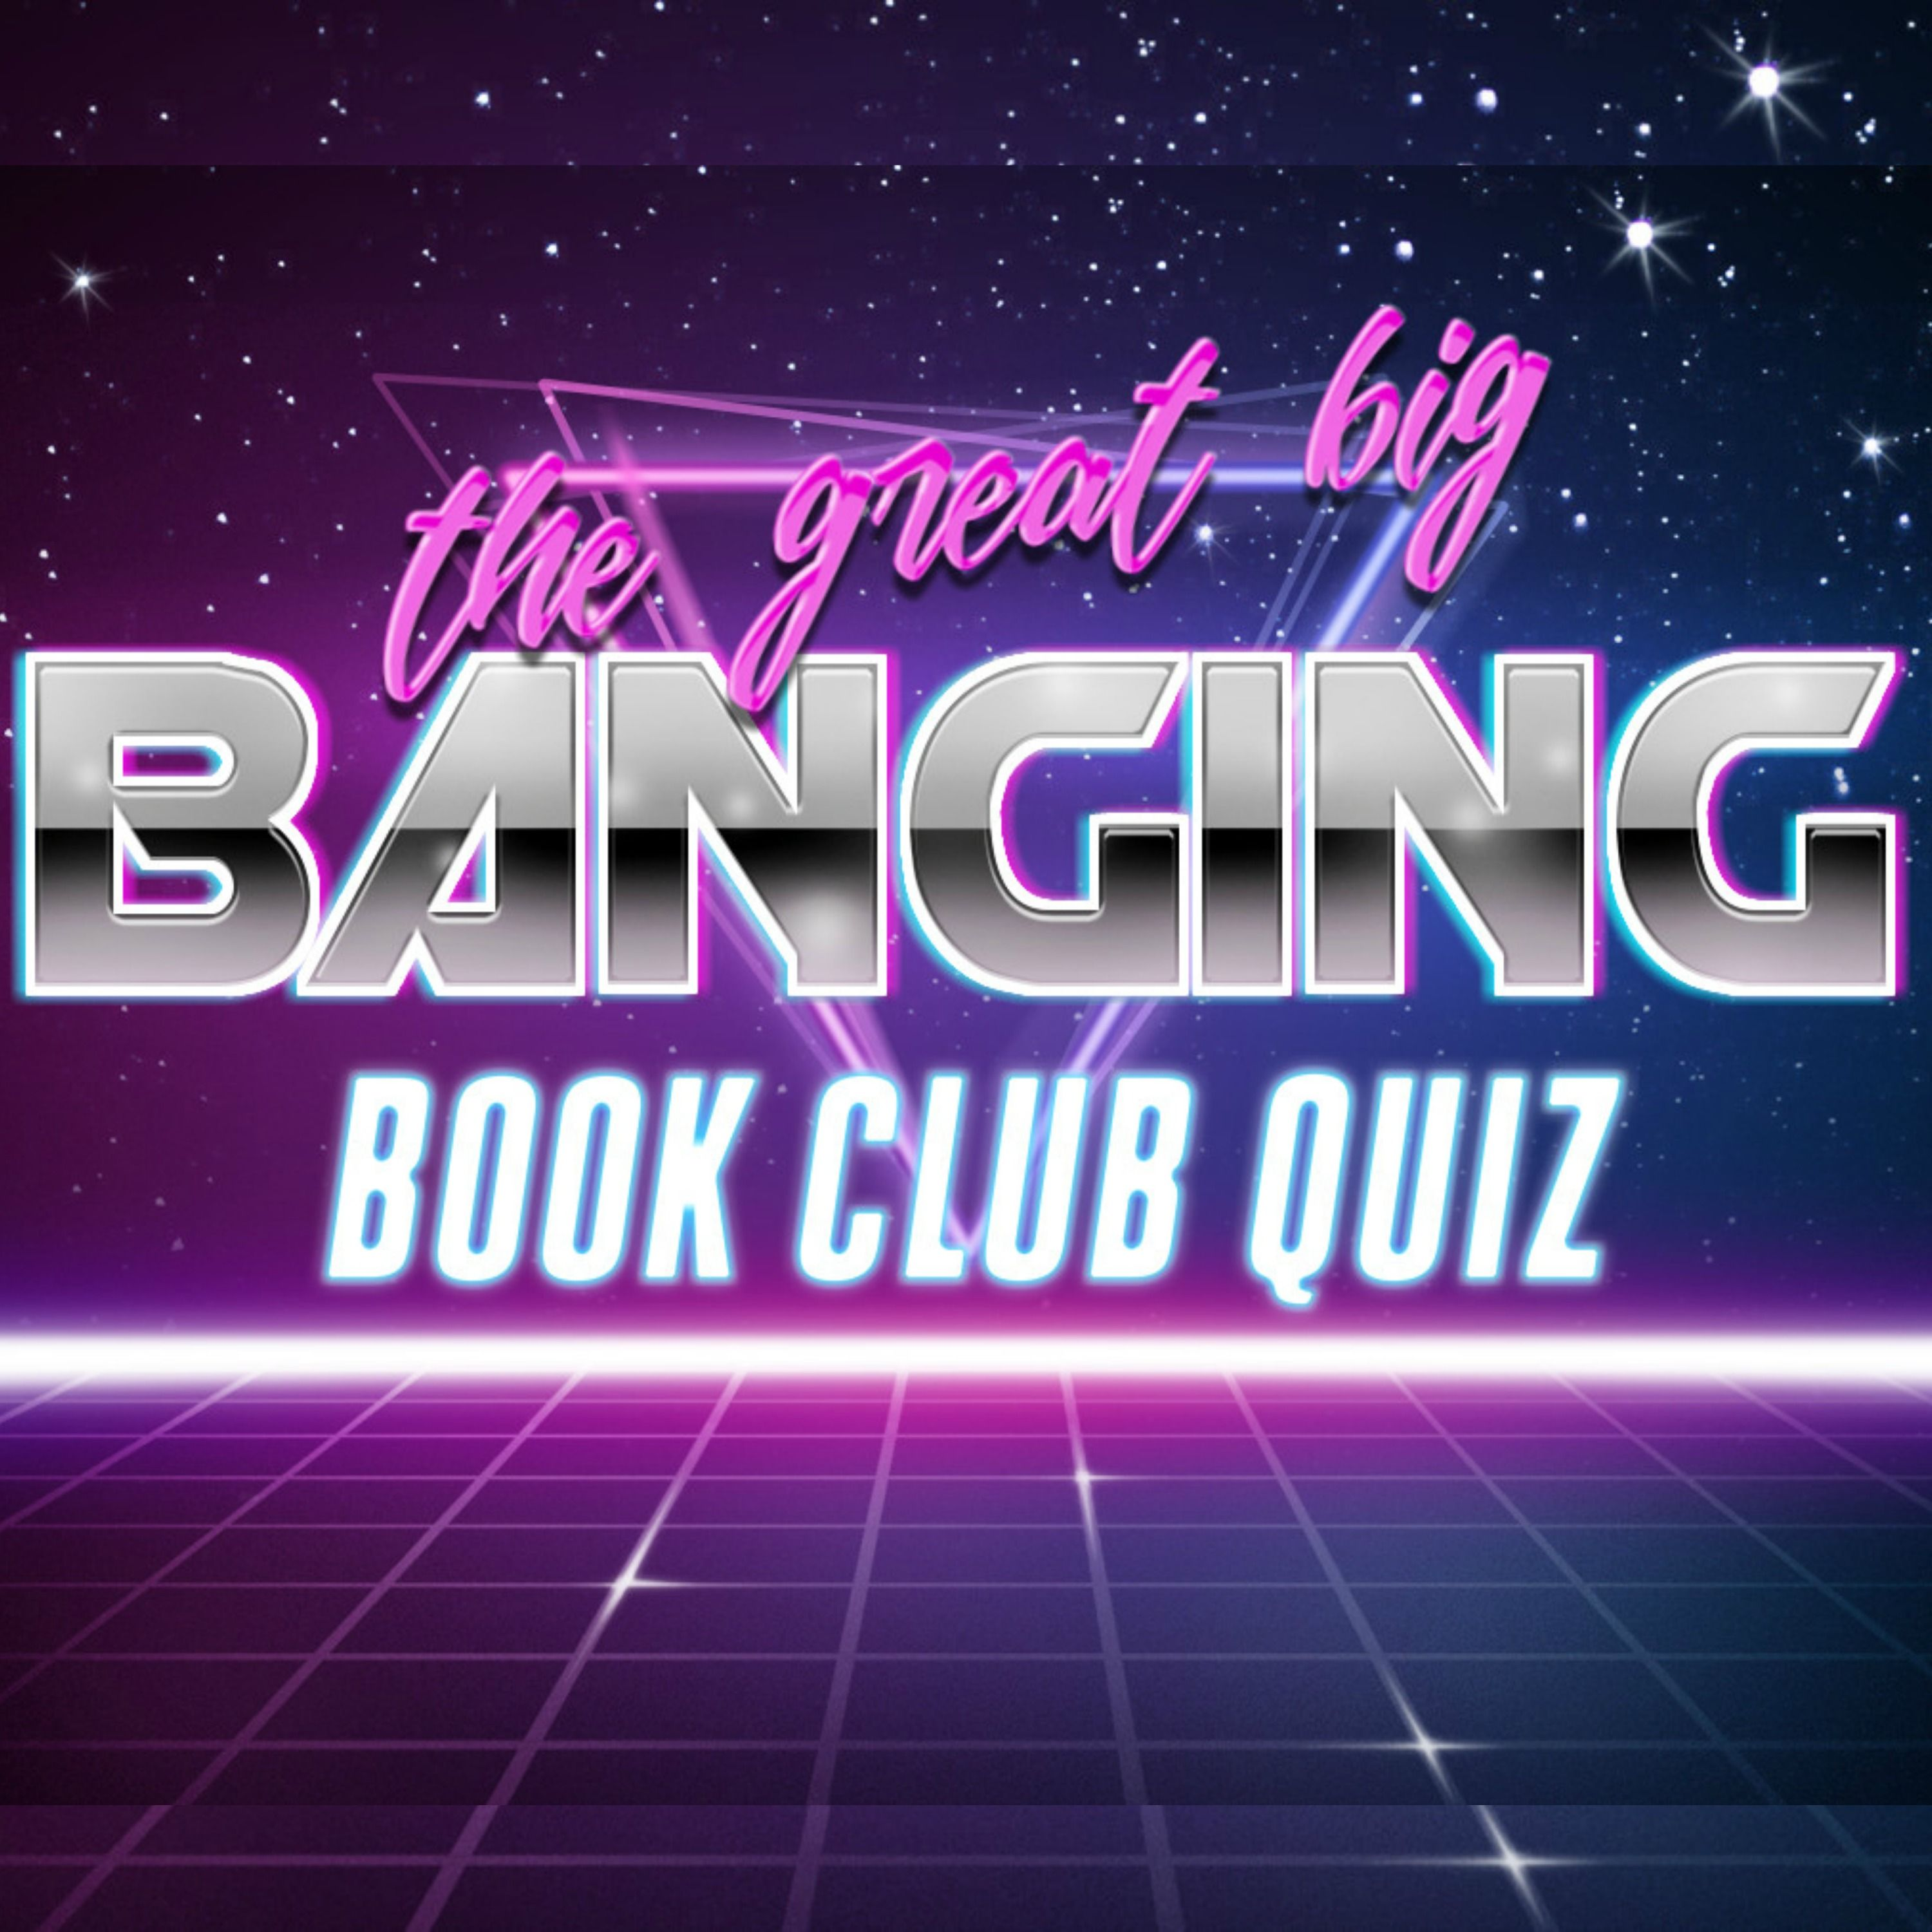 The Great Big Banging Book Club Quiz | S2 November Minisode